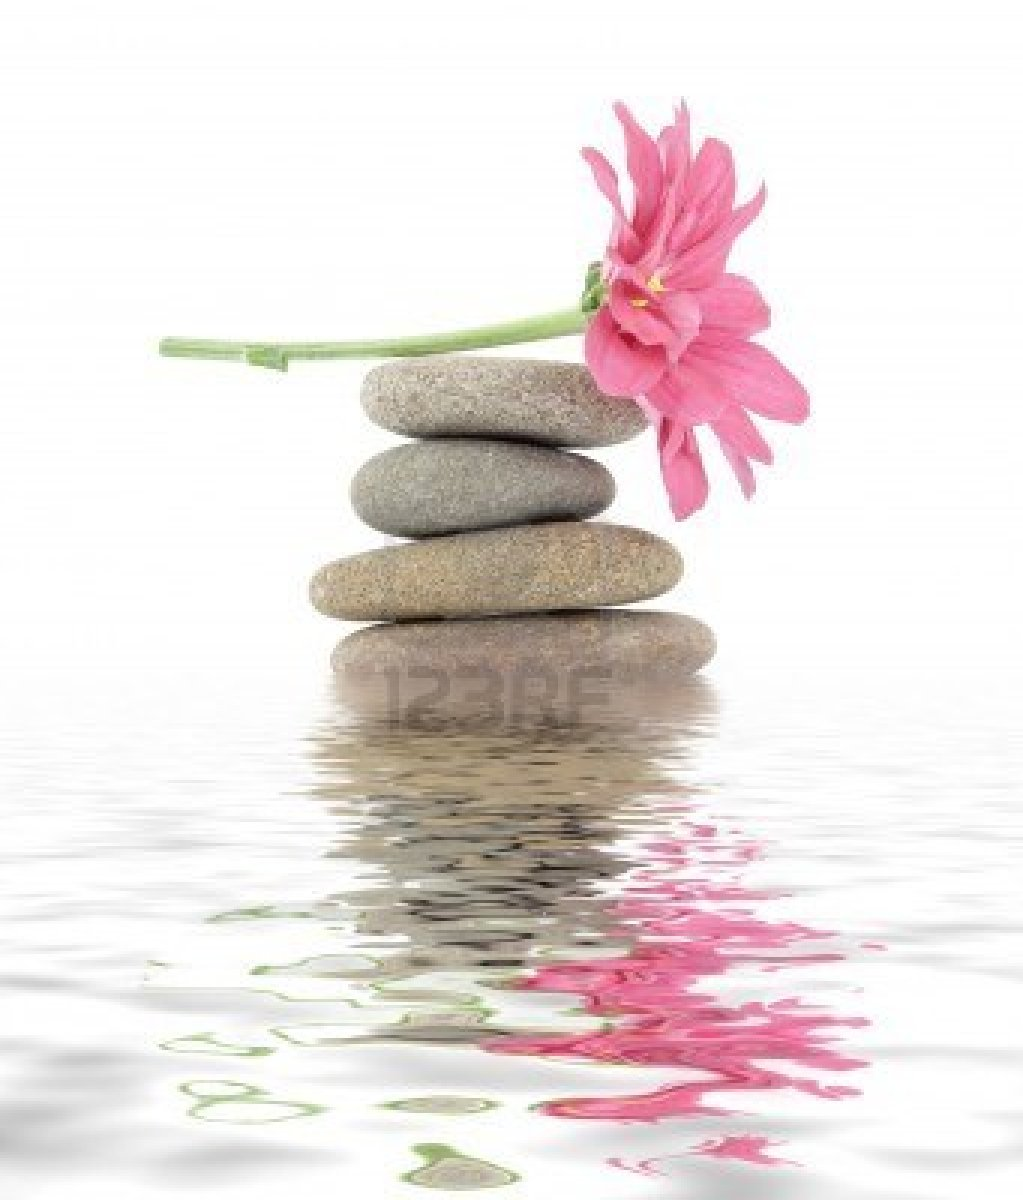 Relax Stone: News From France: Going ZEN In 2013... SOUL SEARCHING